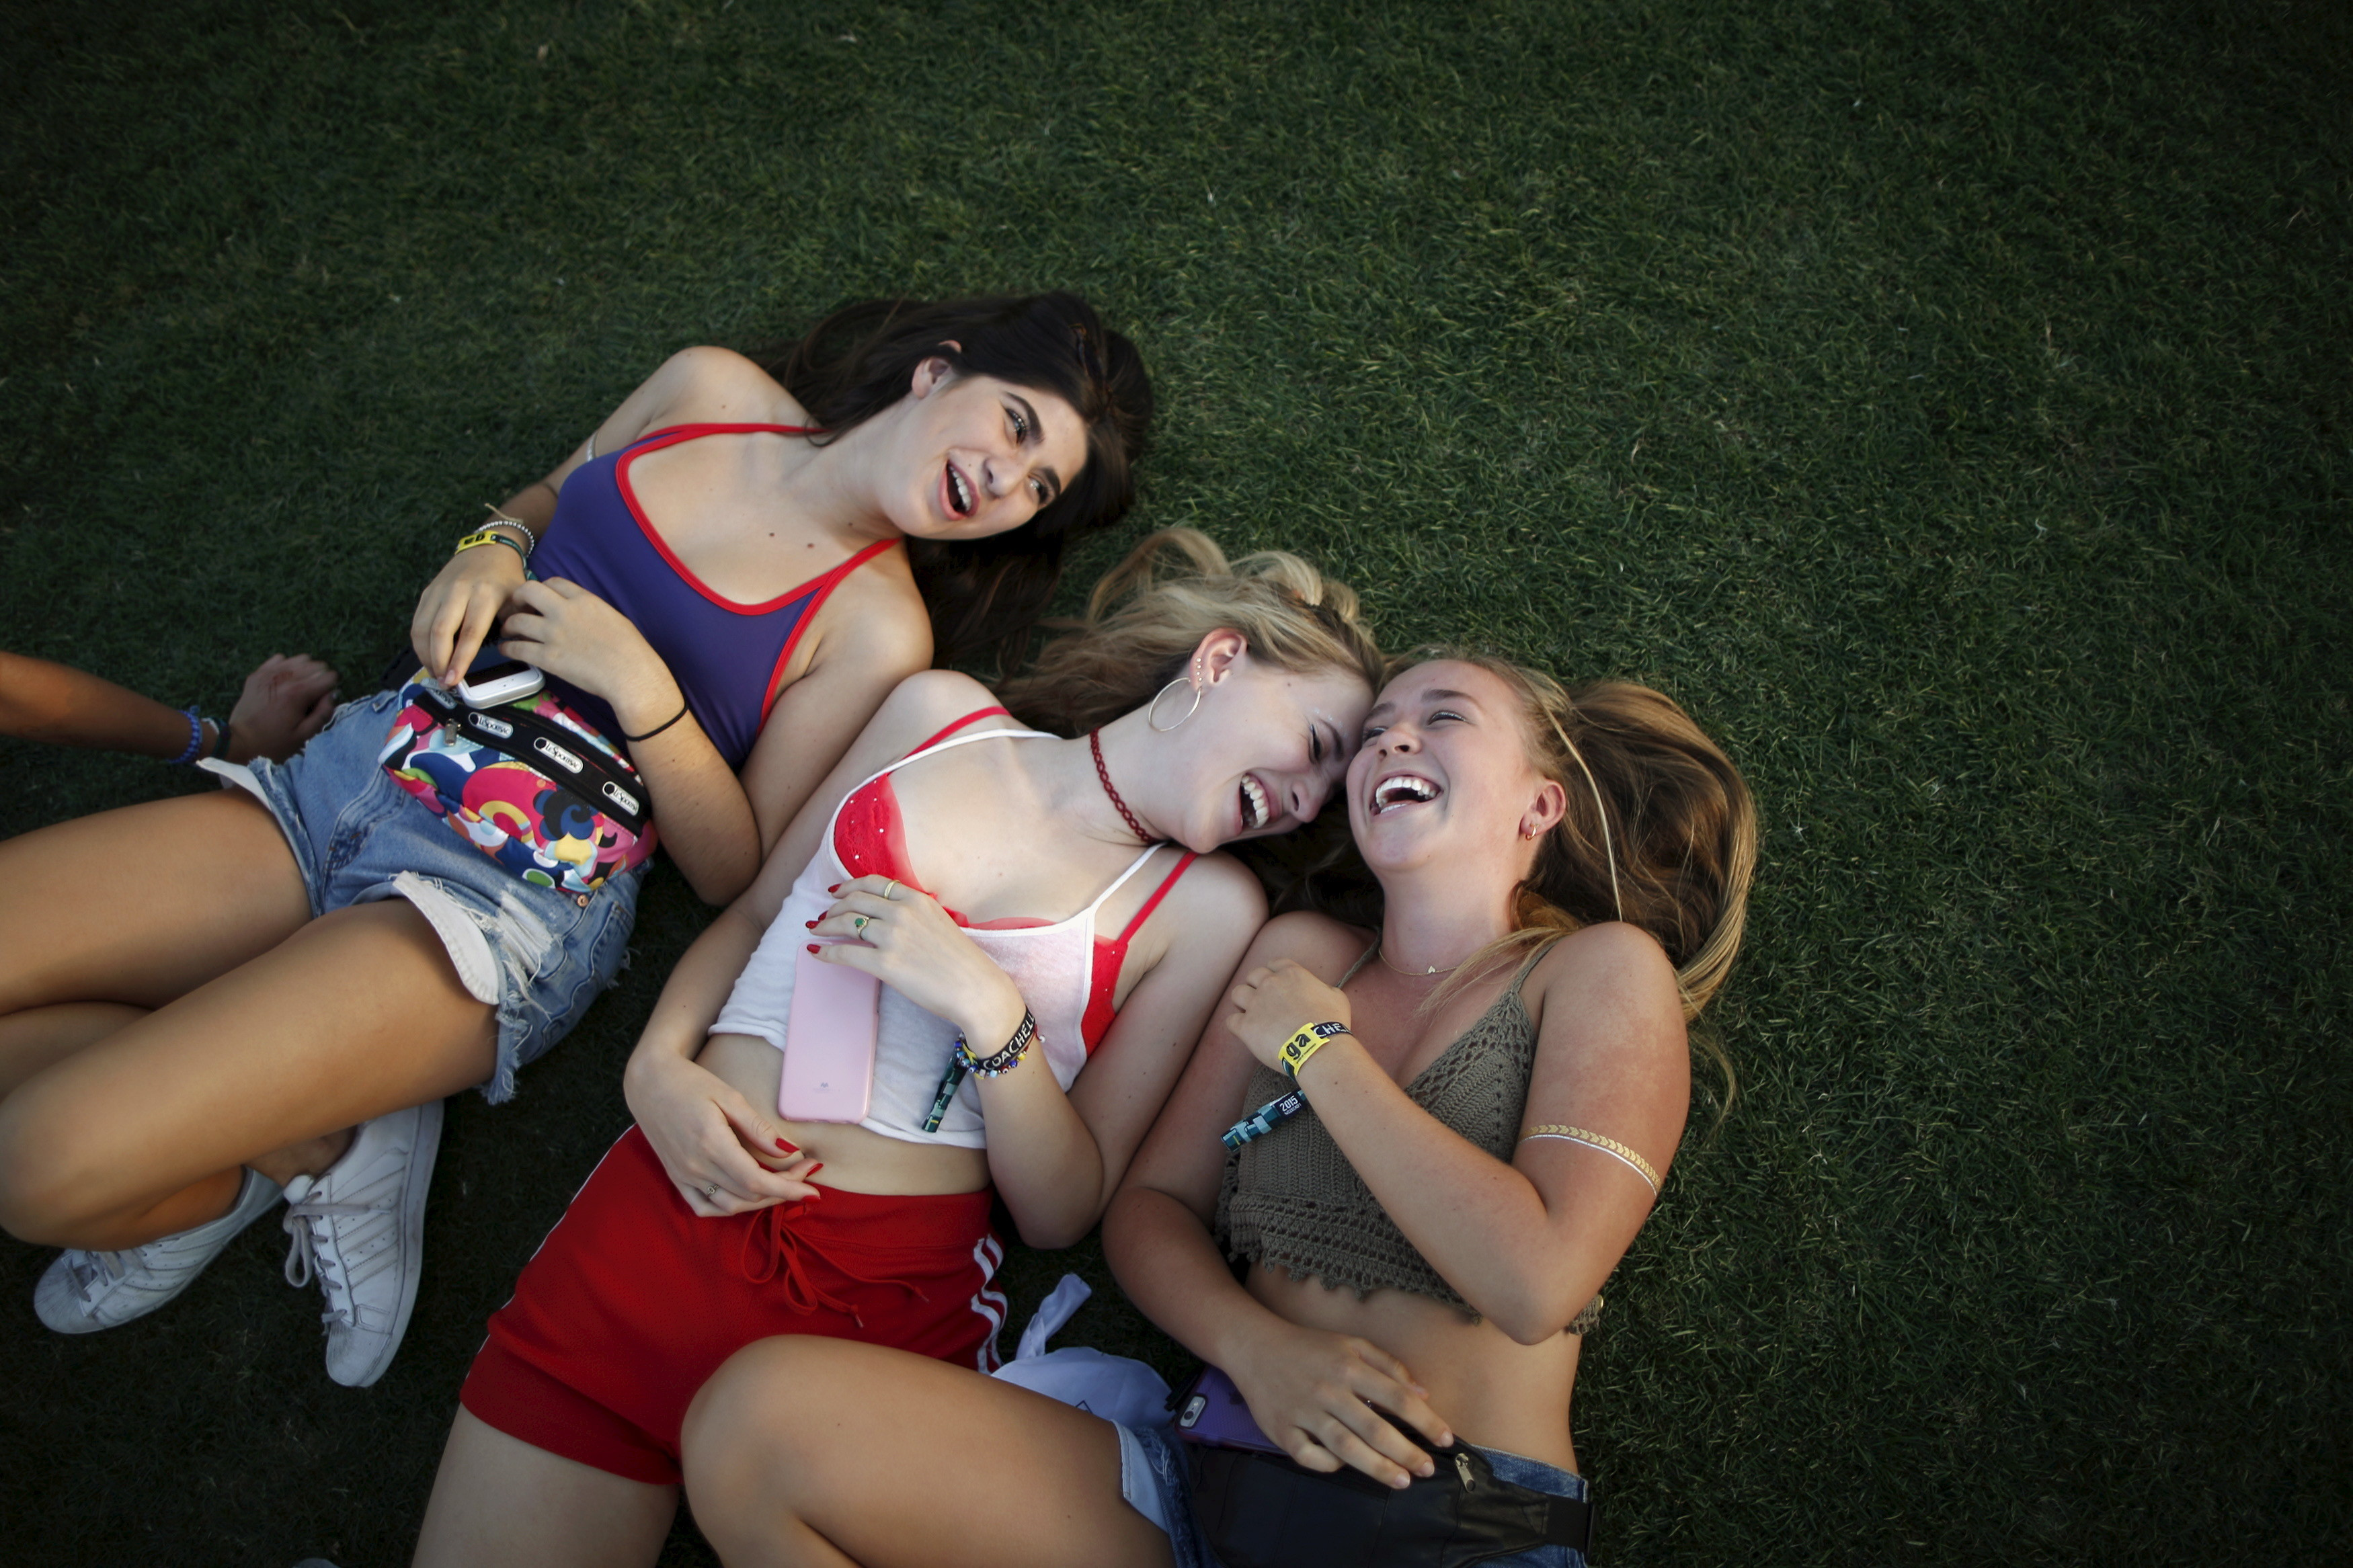 Women lie on the grass to listen to Hozier at the Coachella Valley Music and Arts Festival in Indio, California April 11, 2015. REUTERS/Lucy Nicholson - GF10000056660